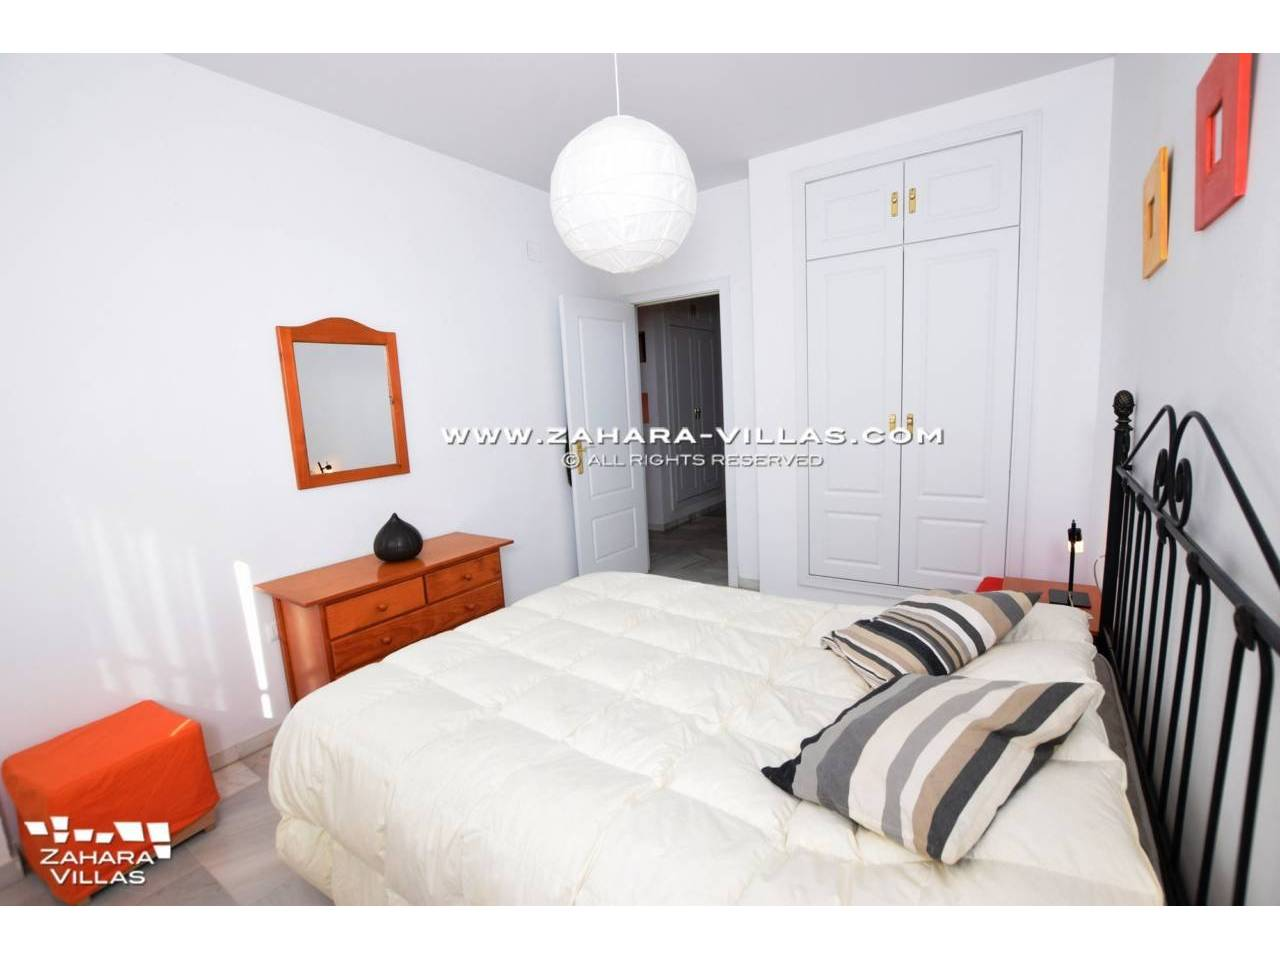 Imagen 7 de Apartment for sale in Urb. Aretusa - Zahara Pueblo